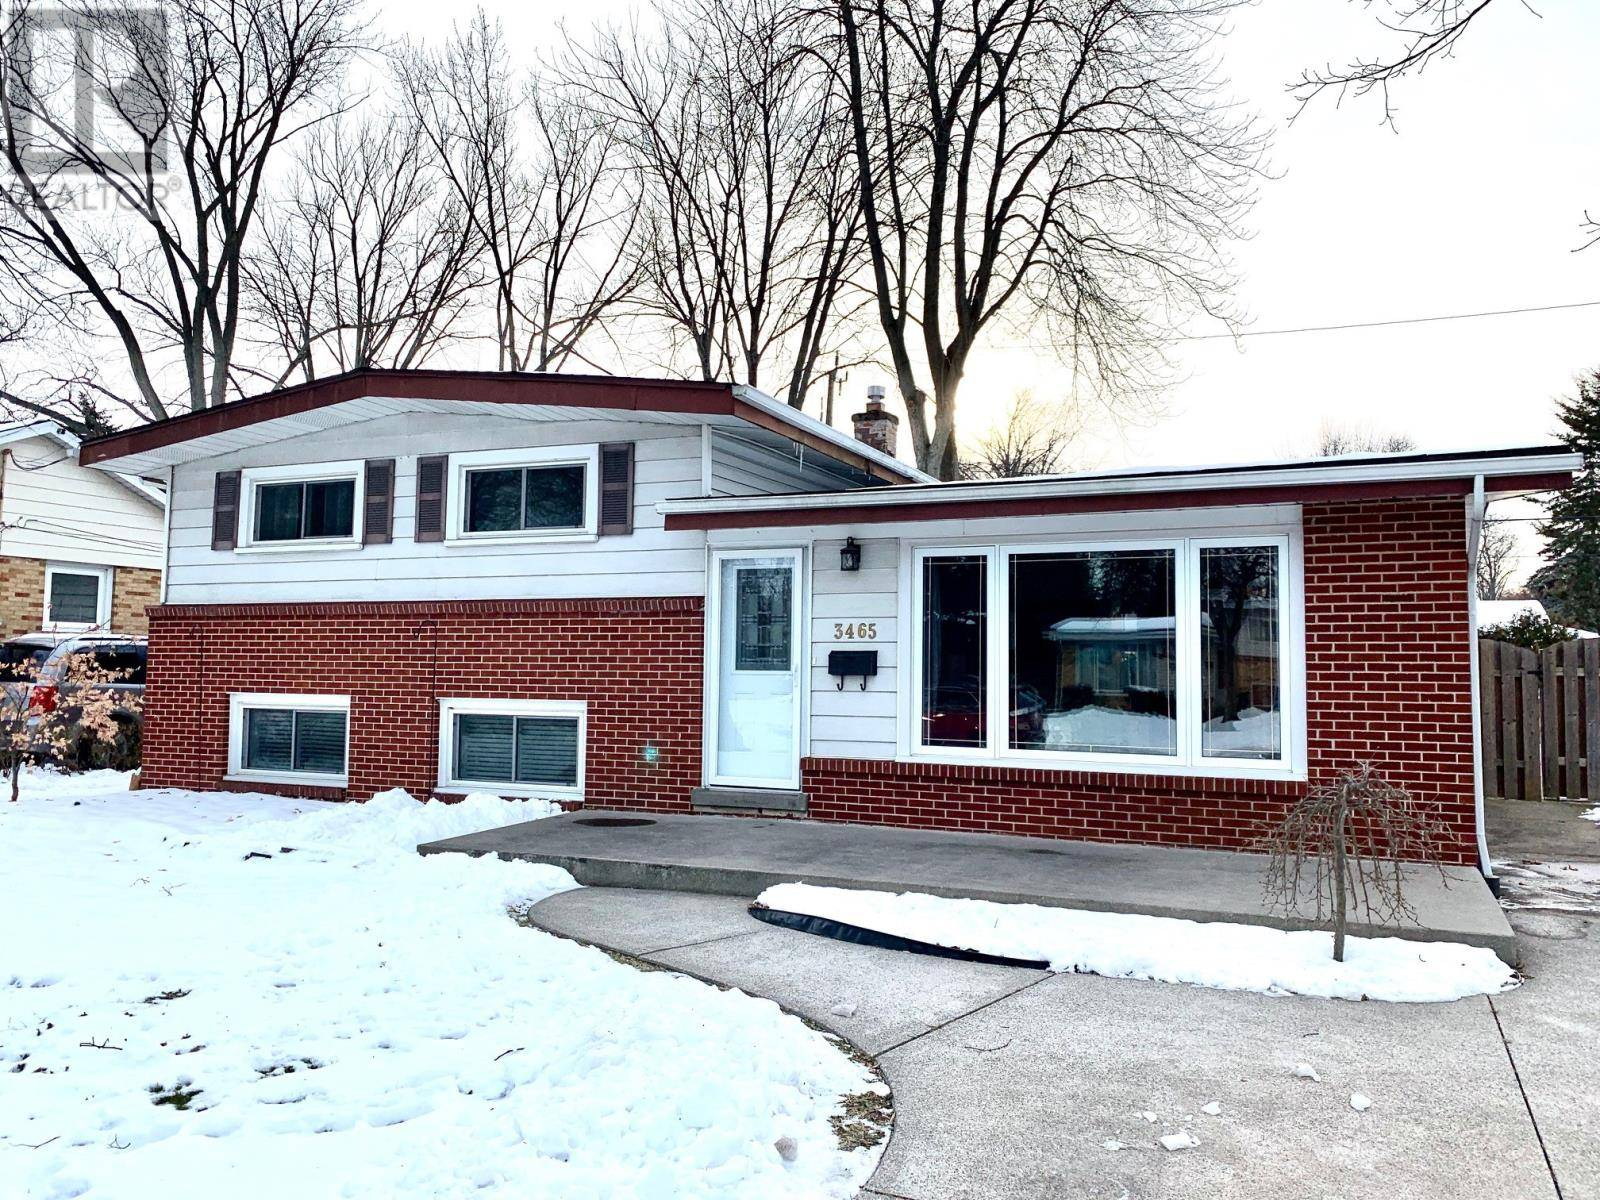 House for sale at 3465 Charlevoix  Windsor Ontario - MLS: 20000839